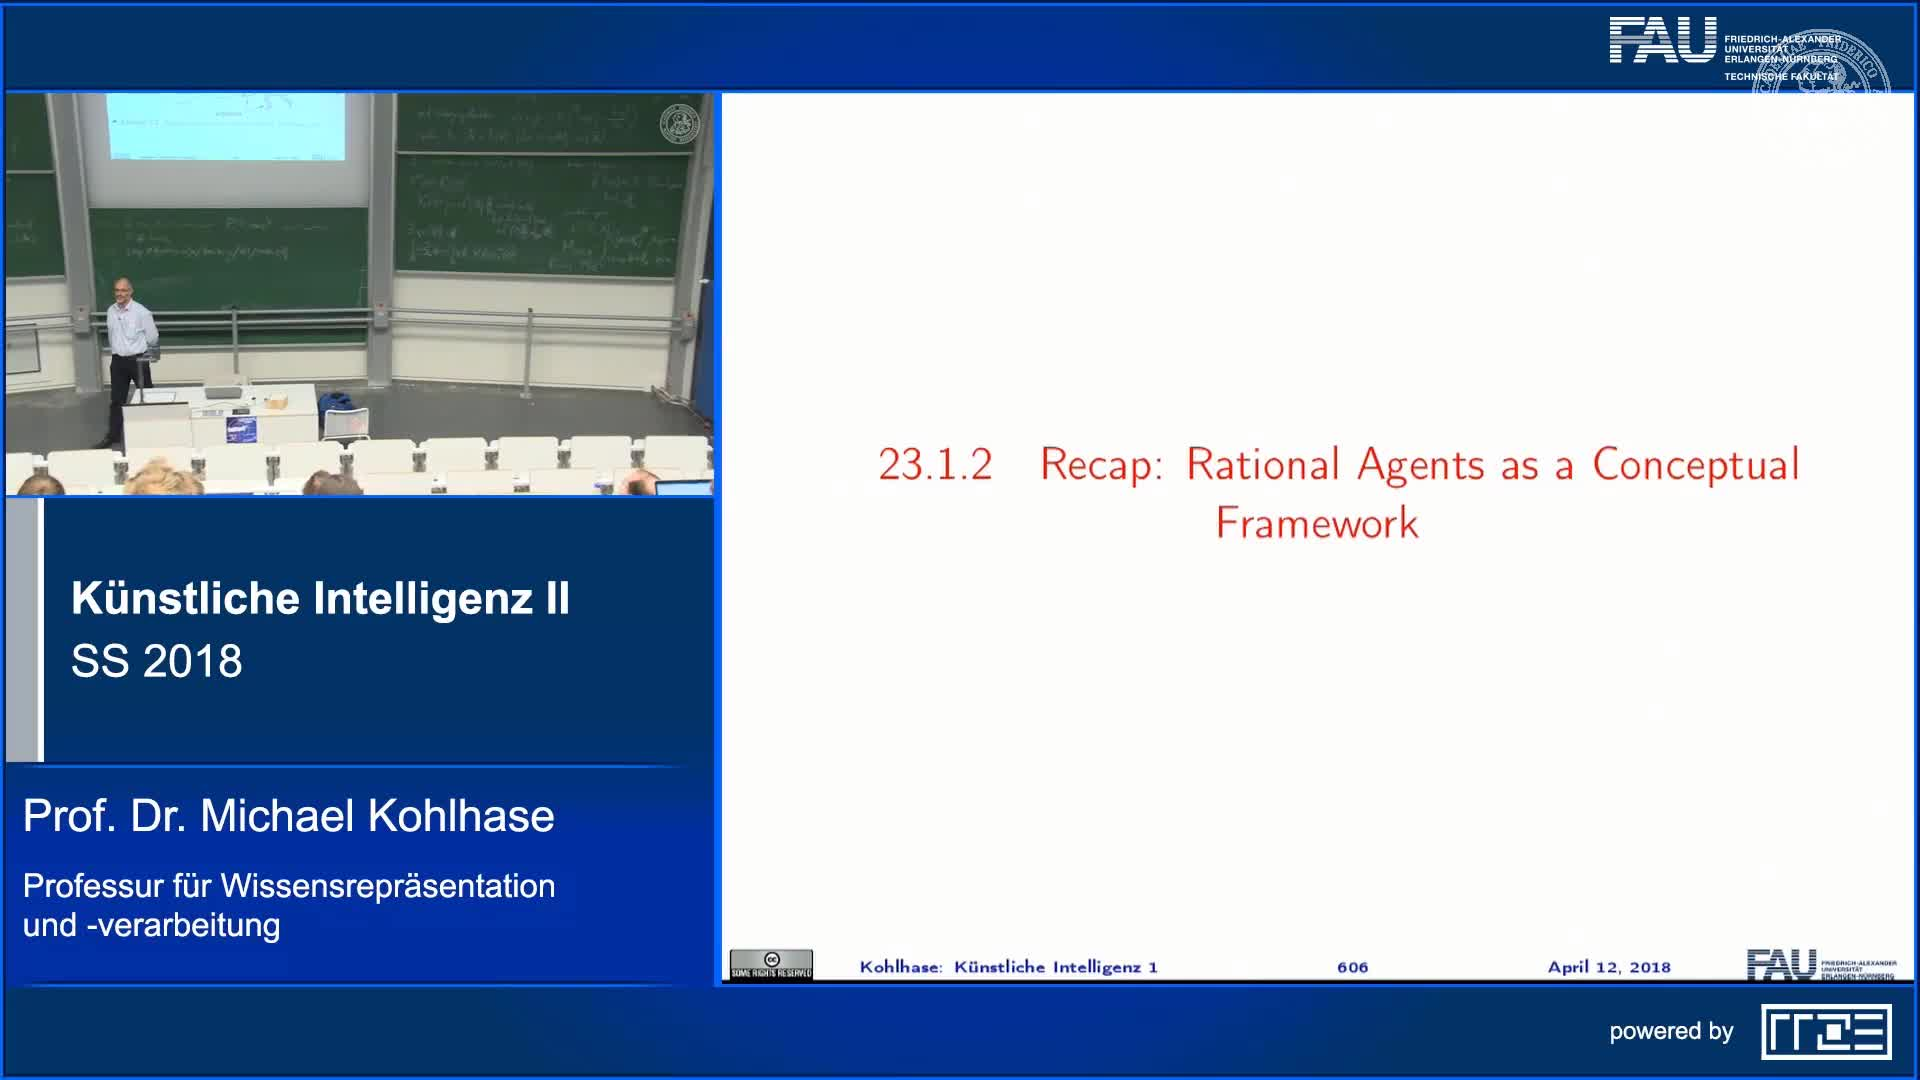 20.1.2. Recap: Rational Agents as a Conceptual Framework preview image